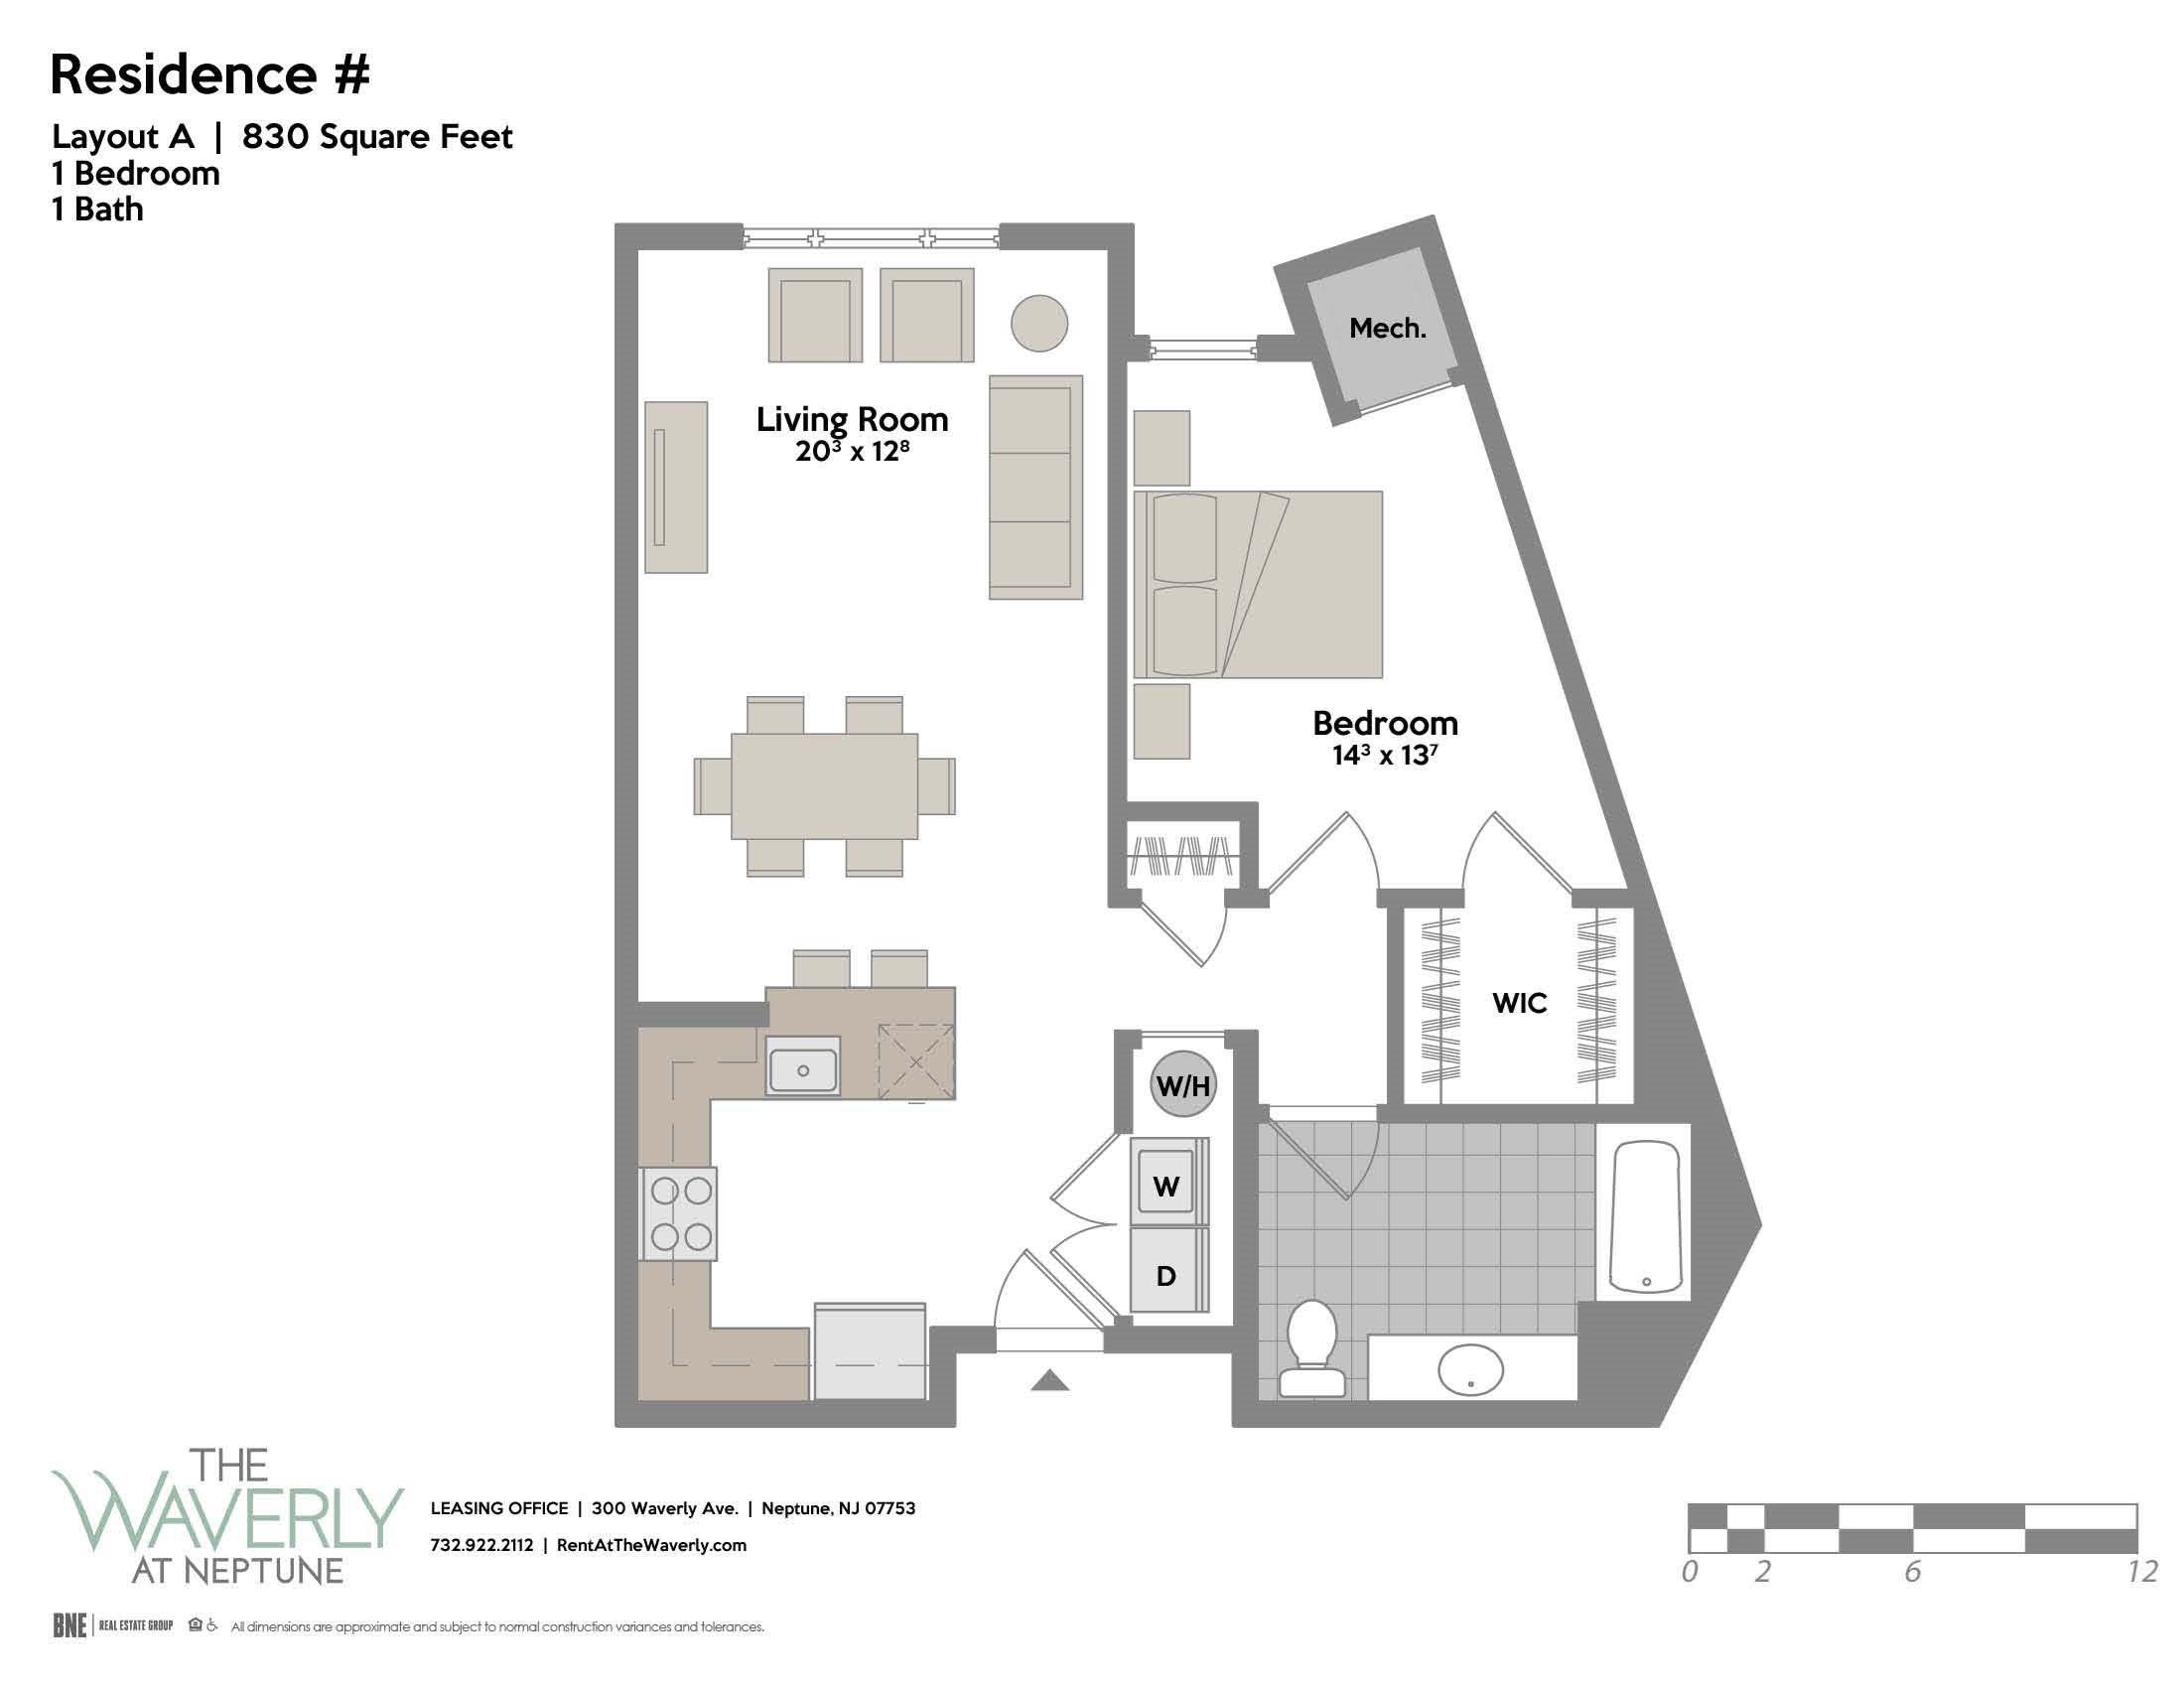 Layout A Floor Plan 1